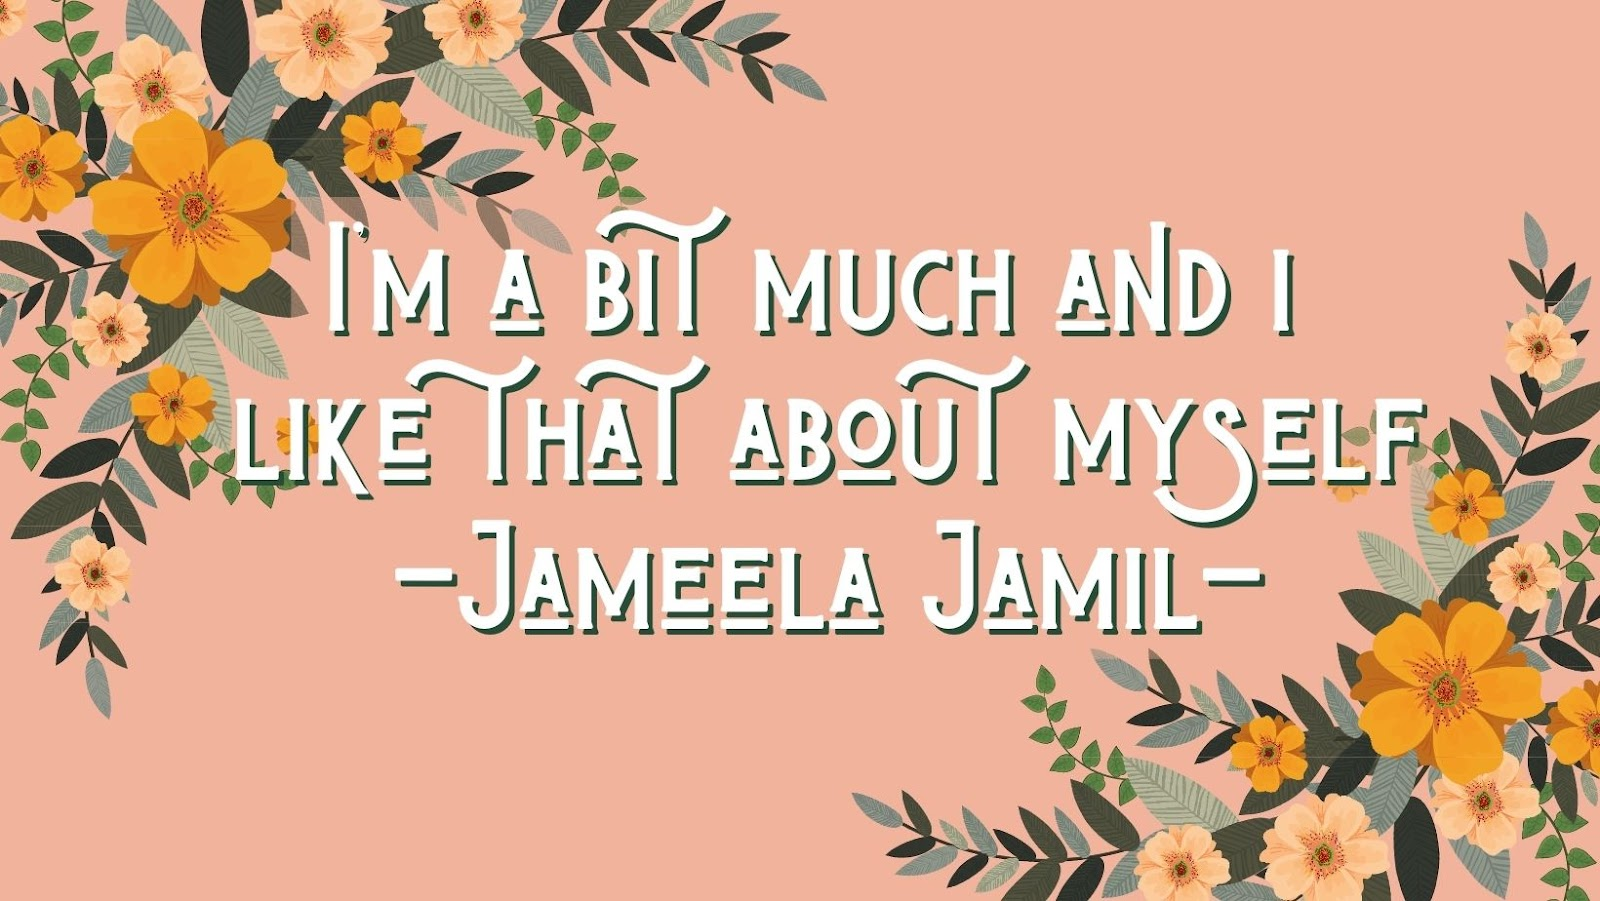 confidence affirmation: I'm a bit much and I like that about myself. Quote by Jameela Jamil